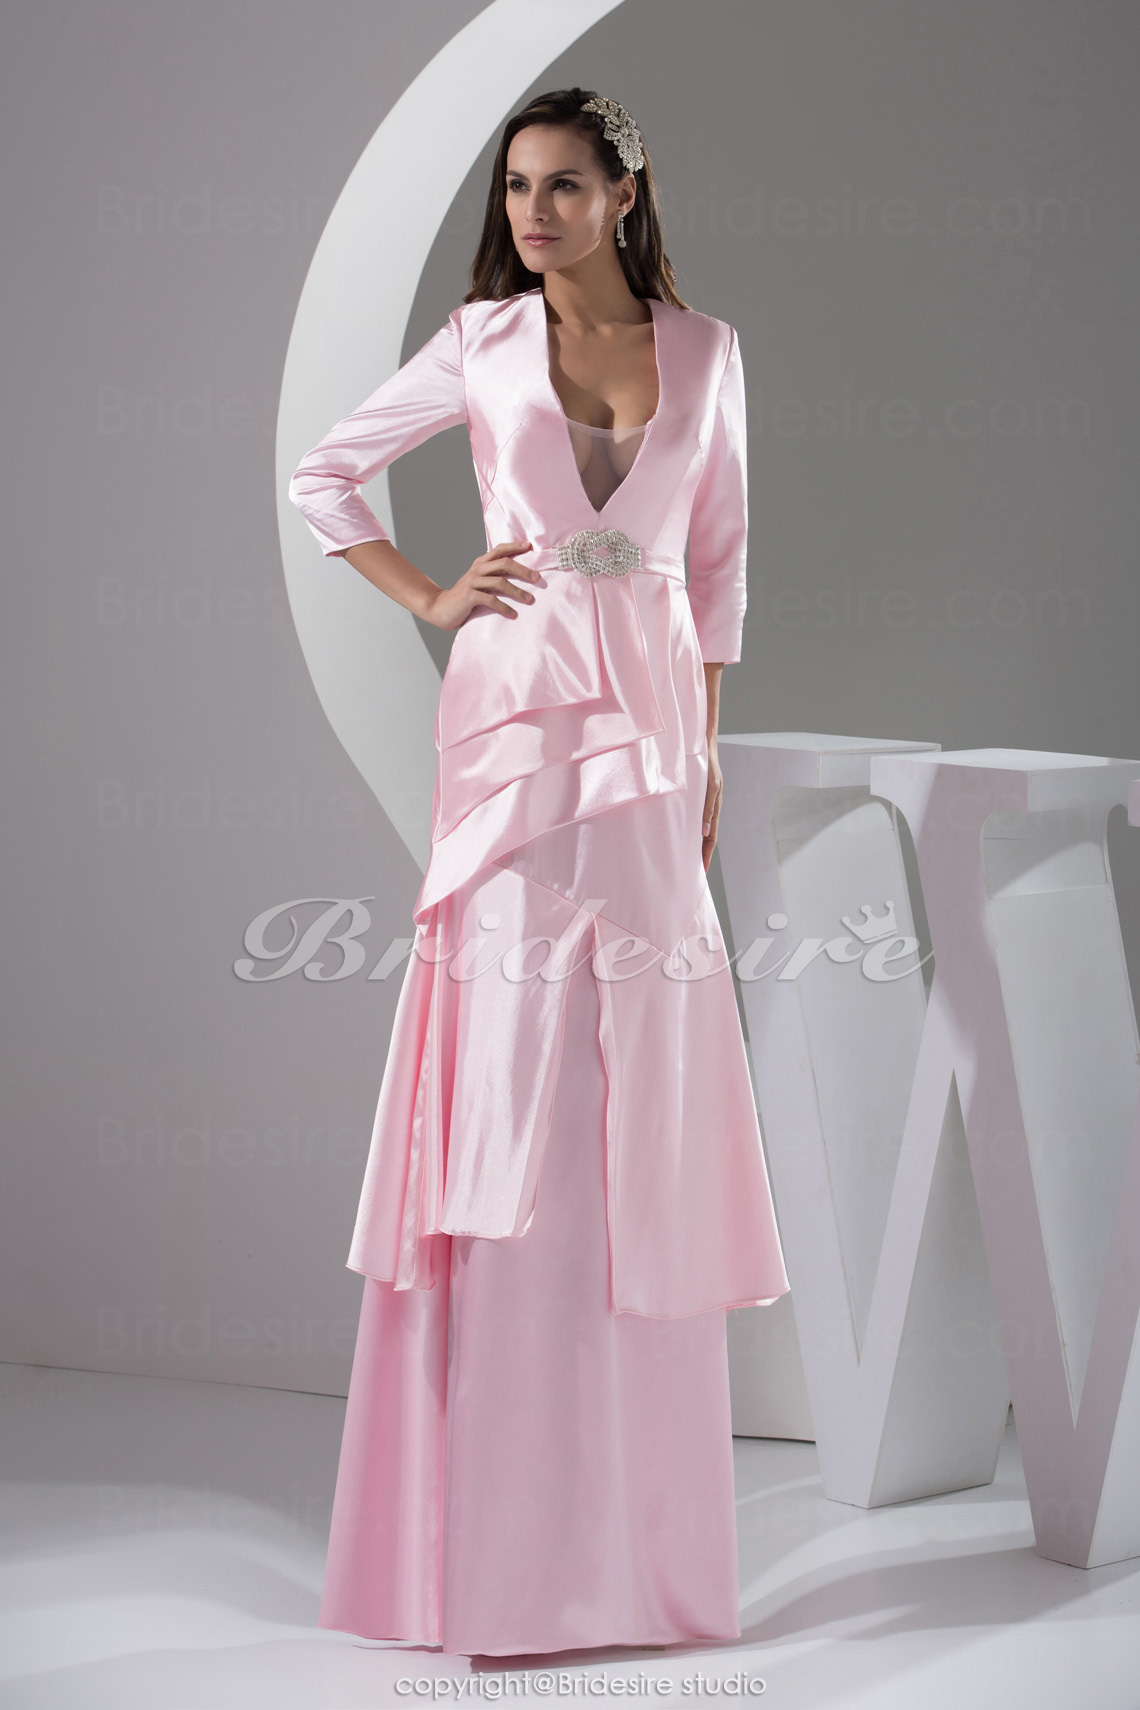 Sheath/Column V-neck Floor-length 3/4 Length Sleeve Satin Dress